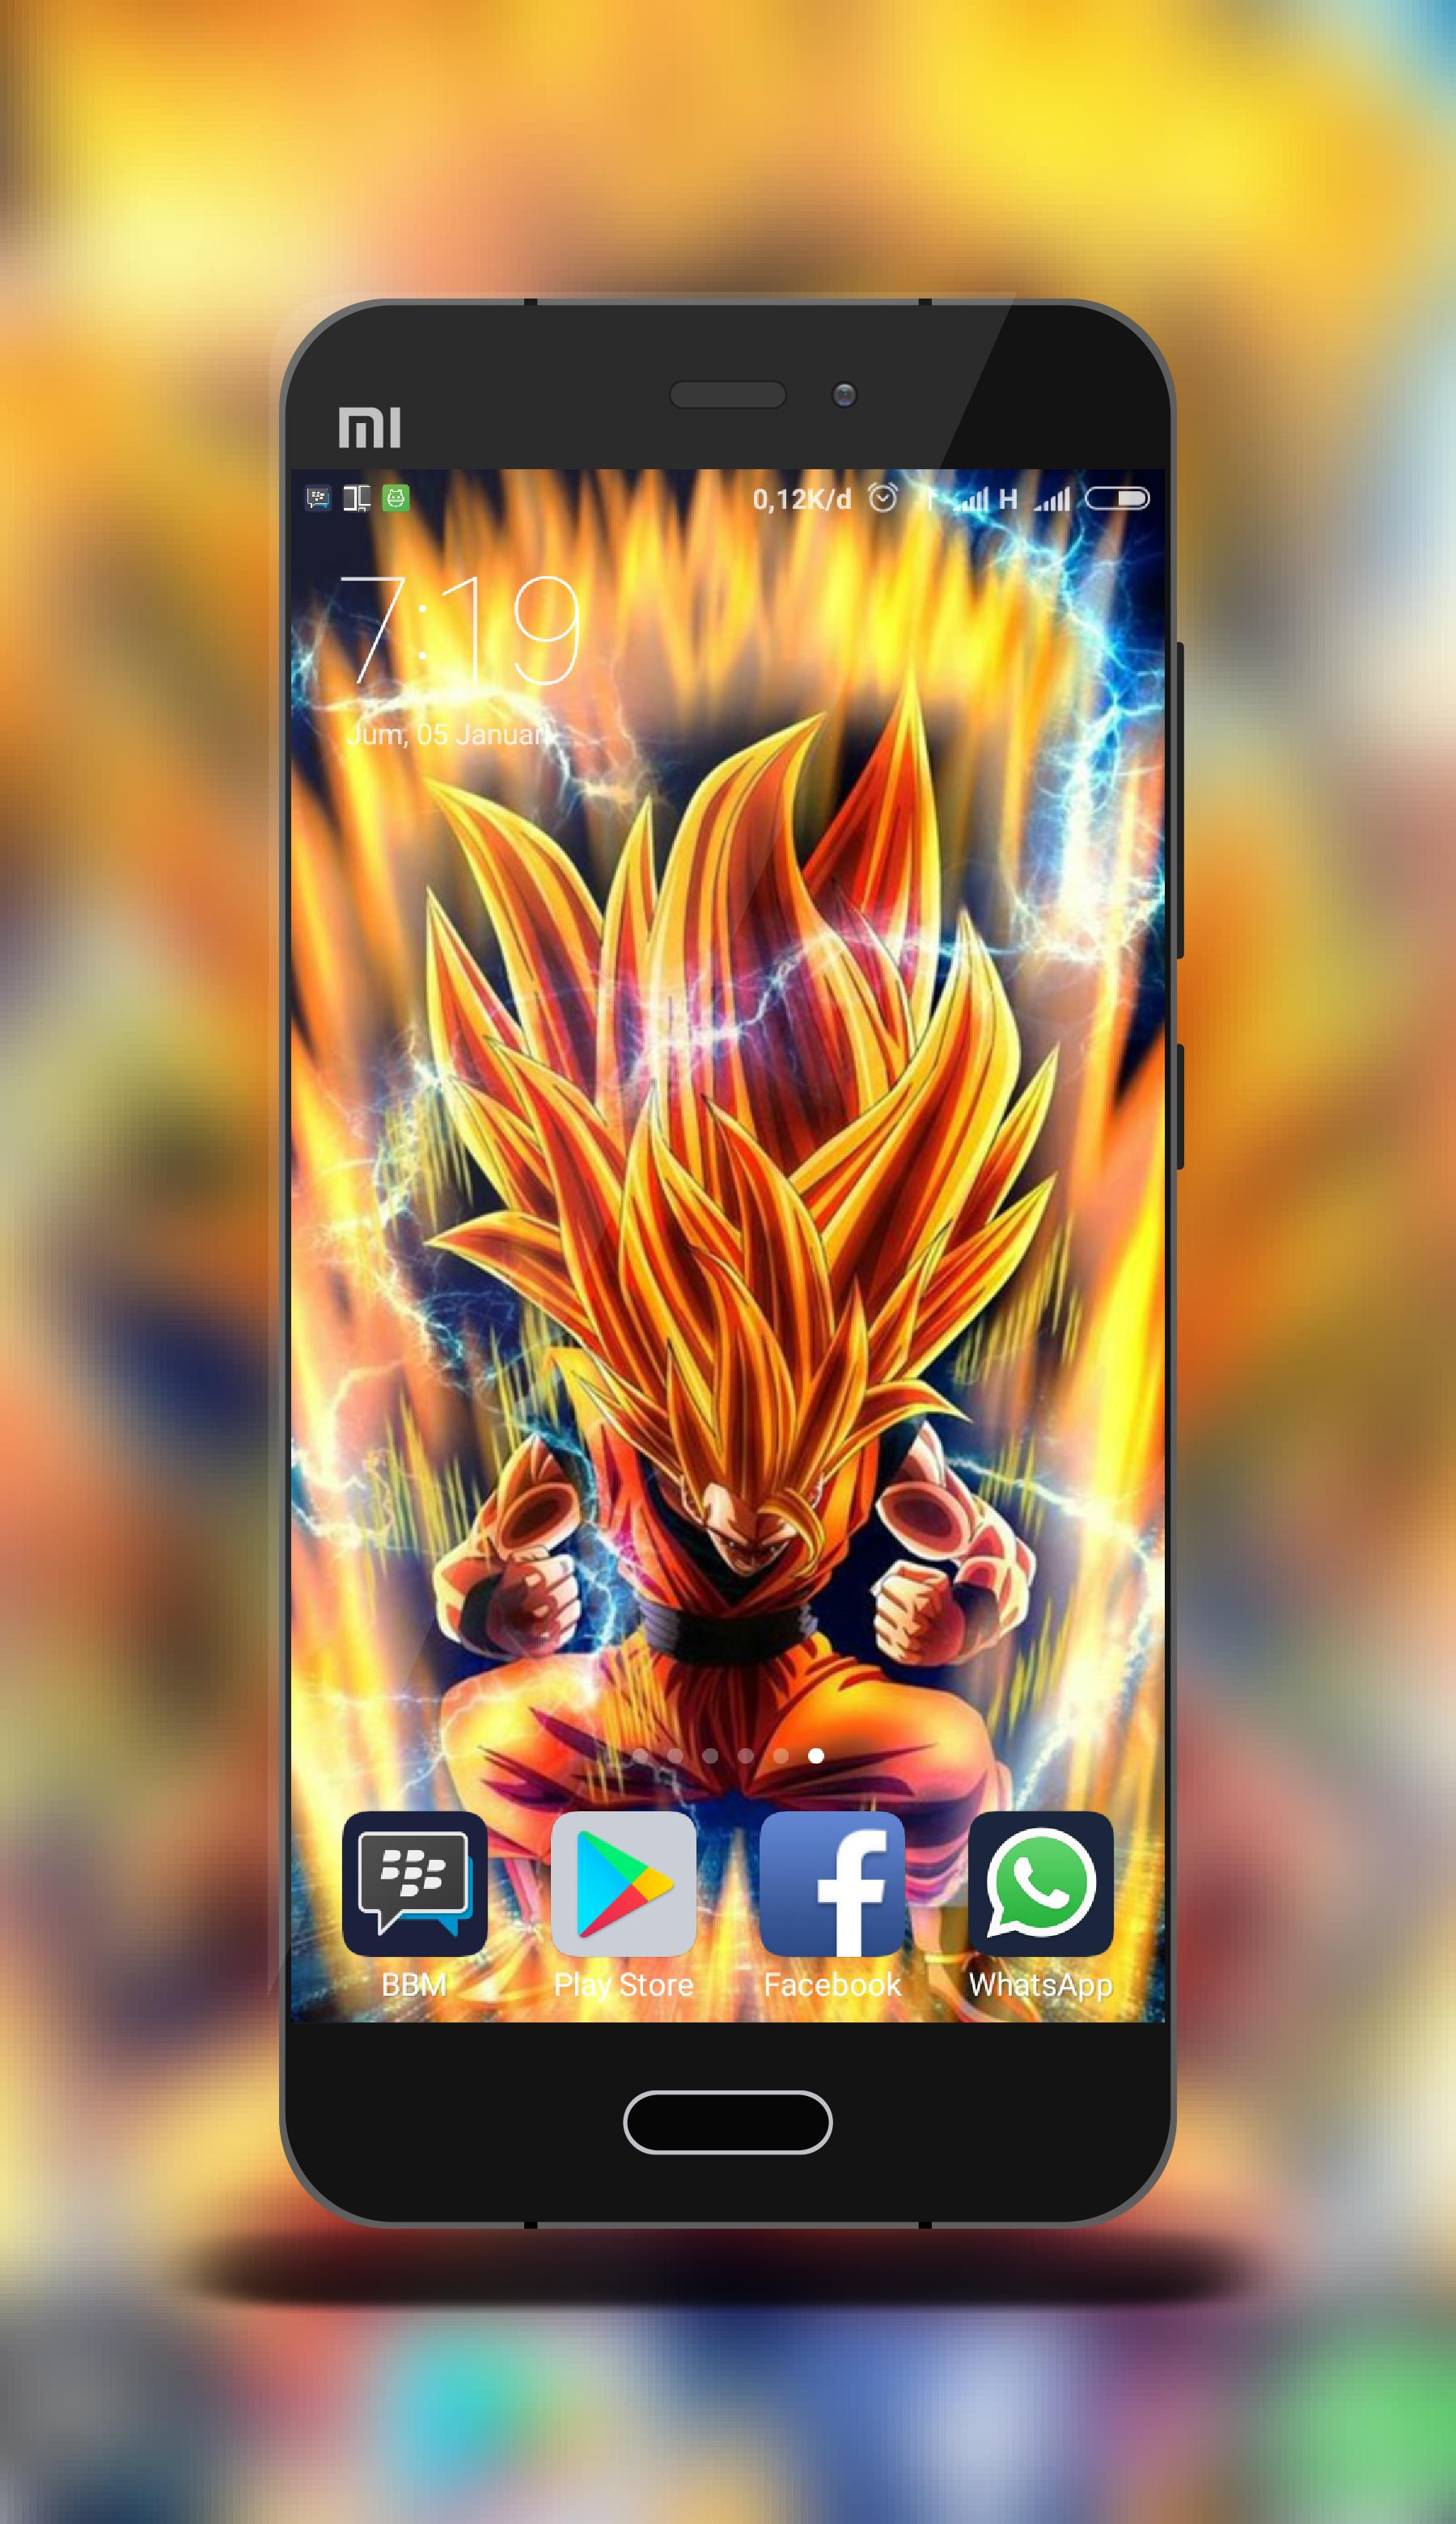 Best Super Saiyan 3 Wallpaper For Android Apk Download